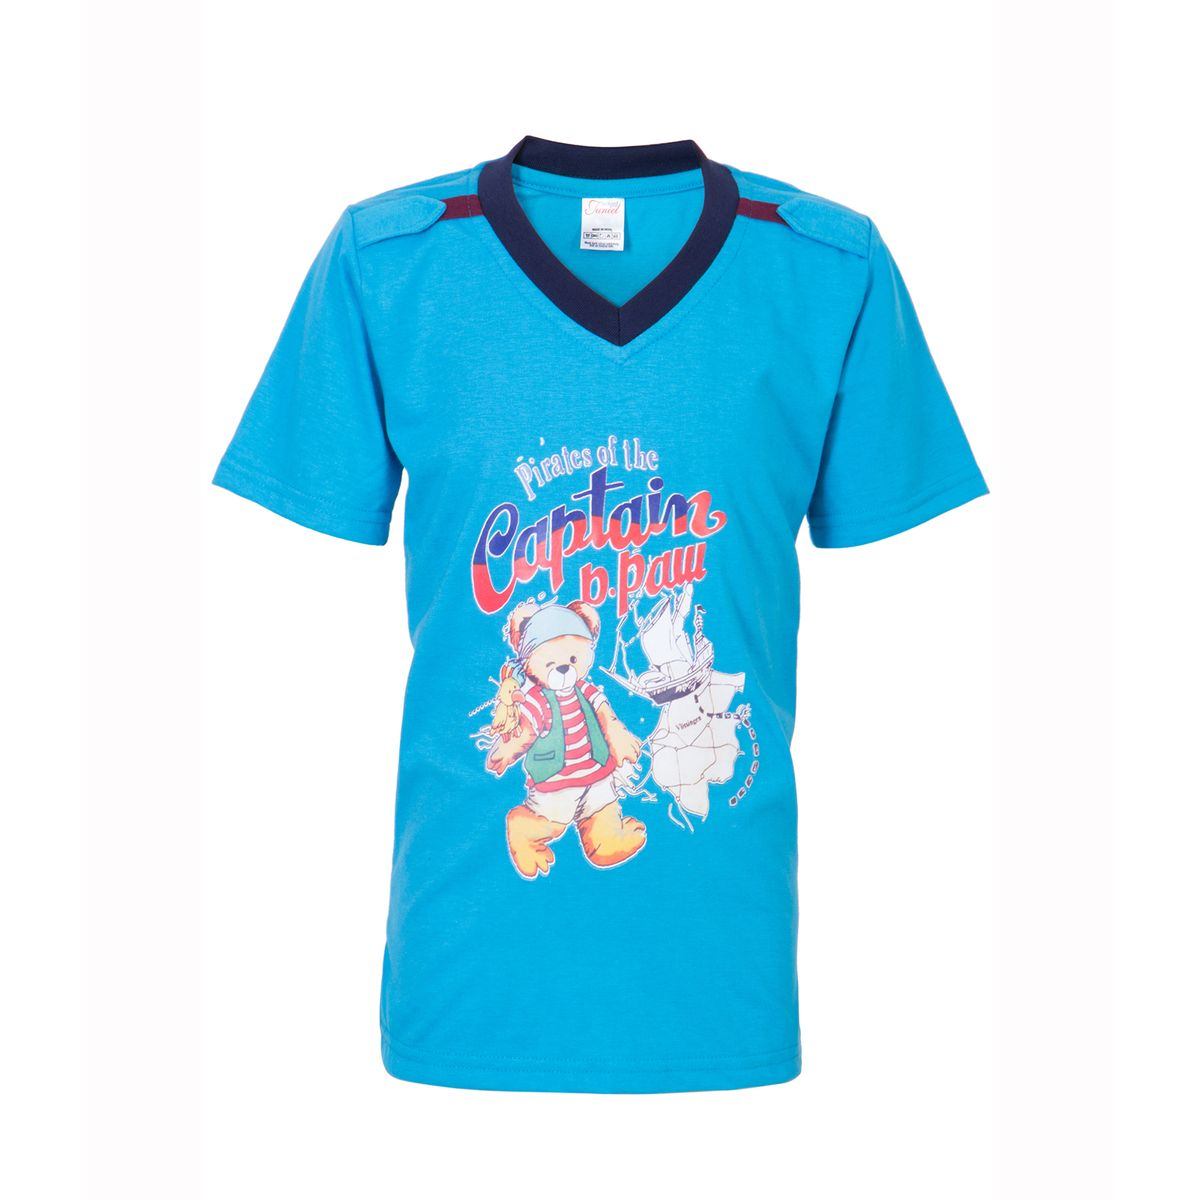 Ultrafit Junior Boys Cotton Multicolored T-Shirt- Pack of 3196